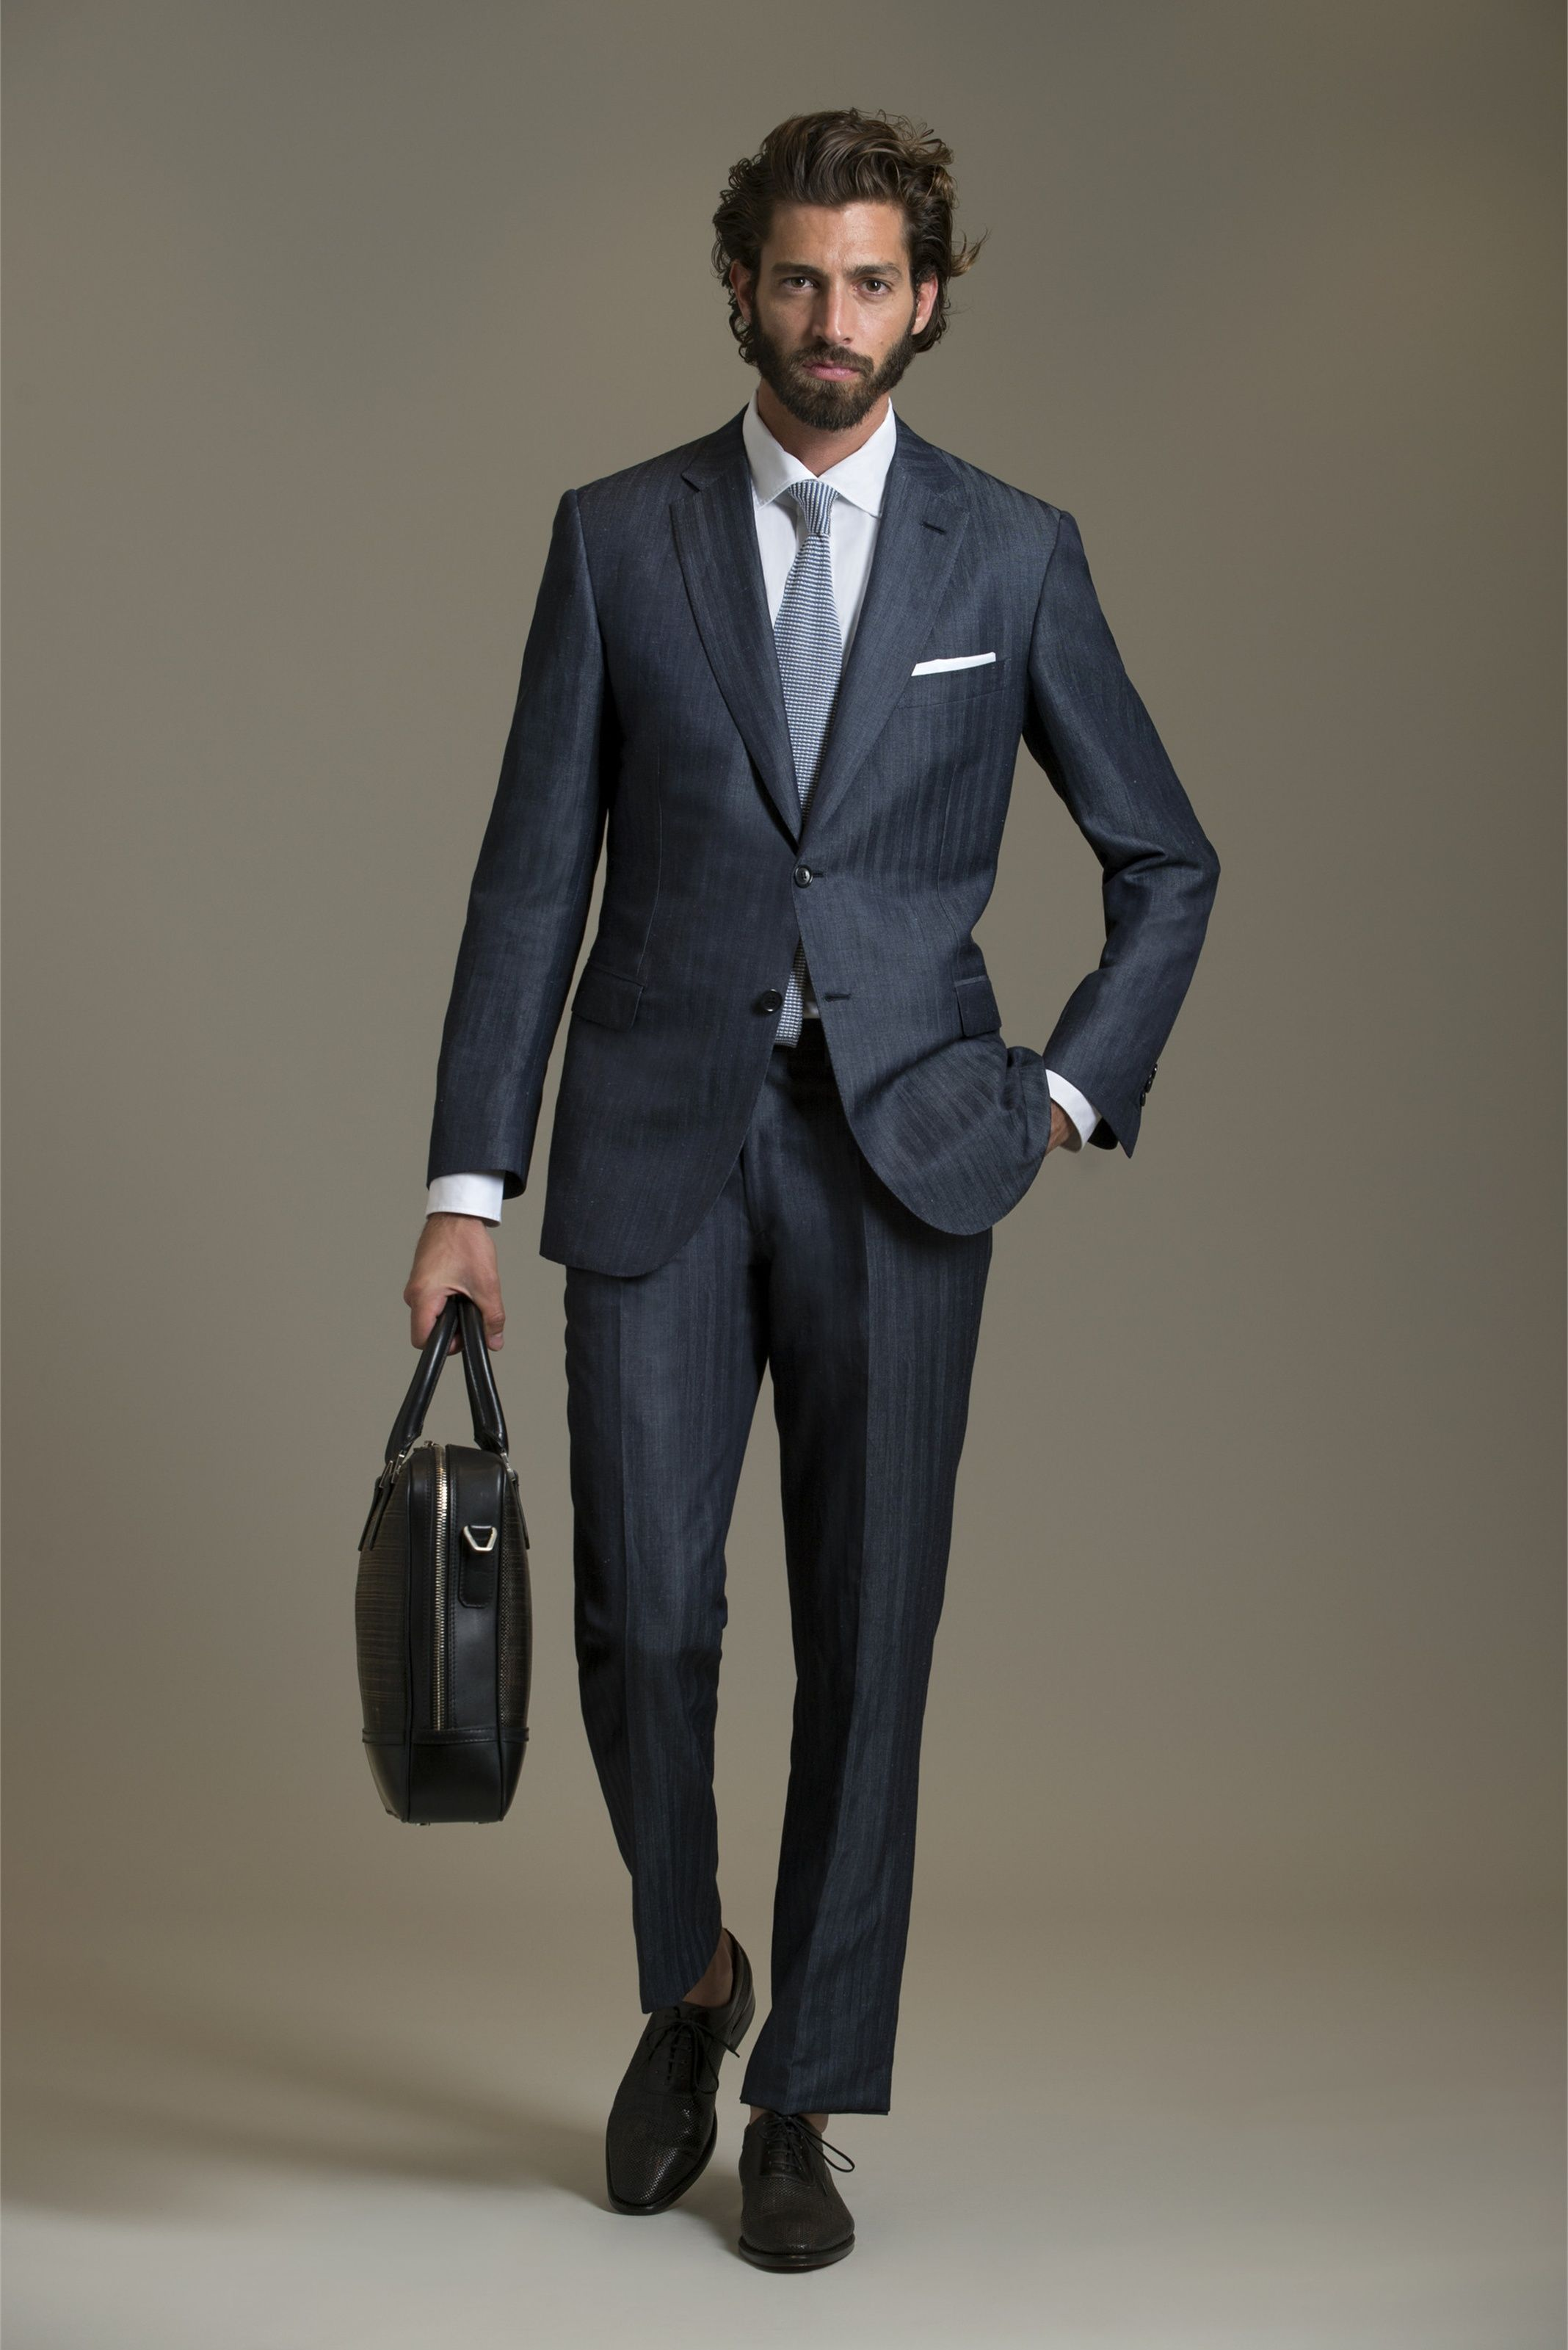 Brioni makes the best suits on Earth.  Yes, they are expensive but if you need a job or a new client buy one.